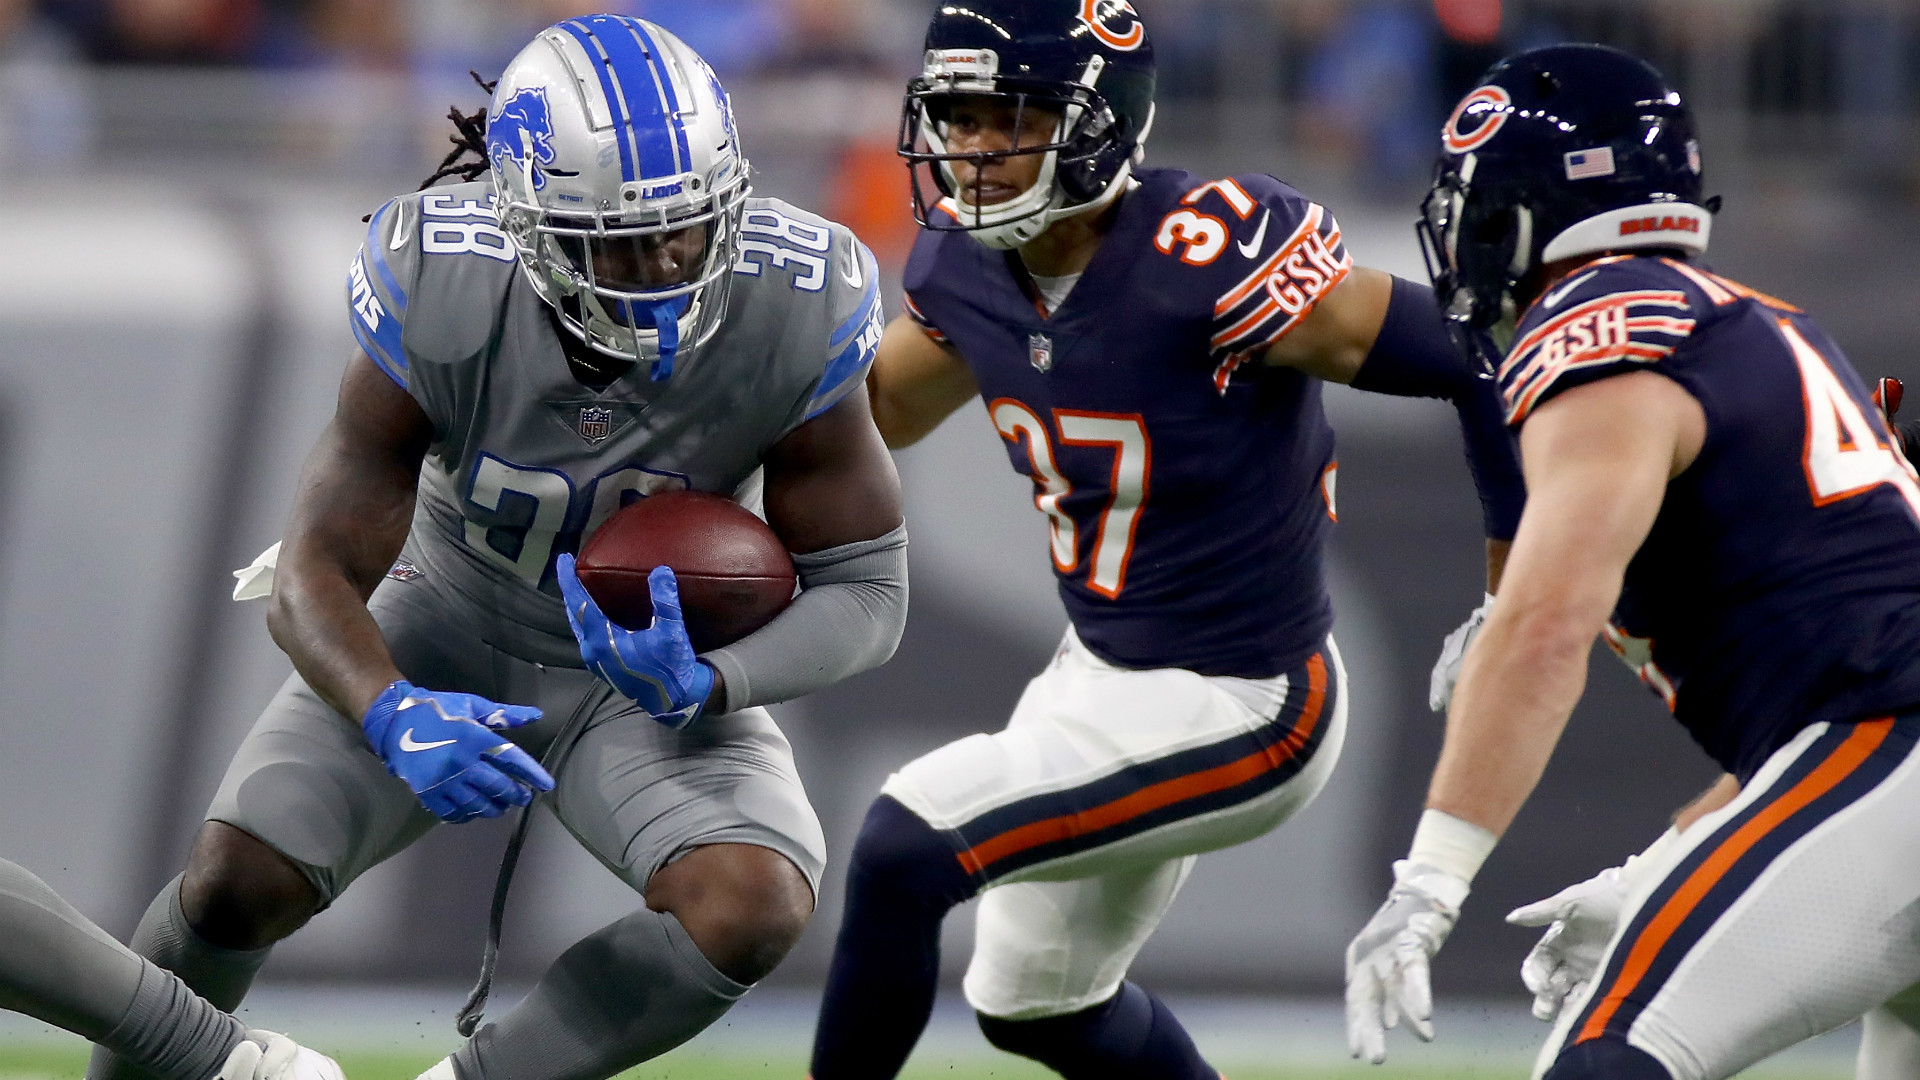 1920x1080 Highlights of the Detroit Lions' clash with the Chicago Bears in week 15 of  the NFL.